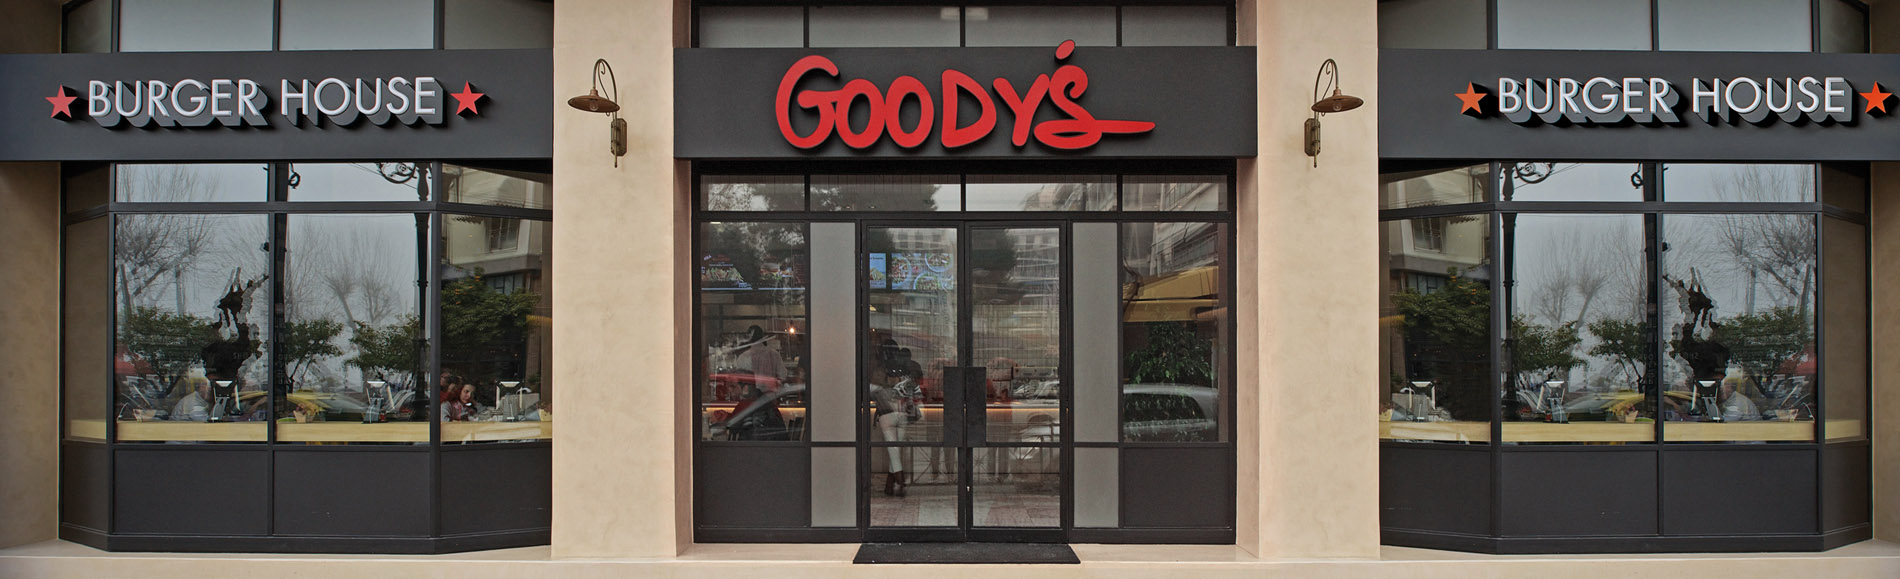 PROLAT GOES TO GOODY'S! Image